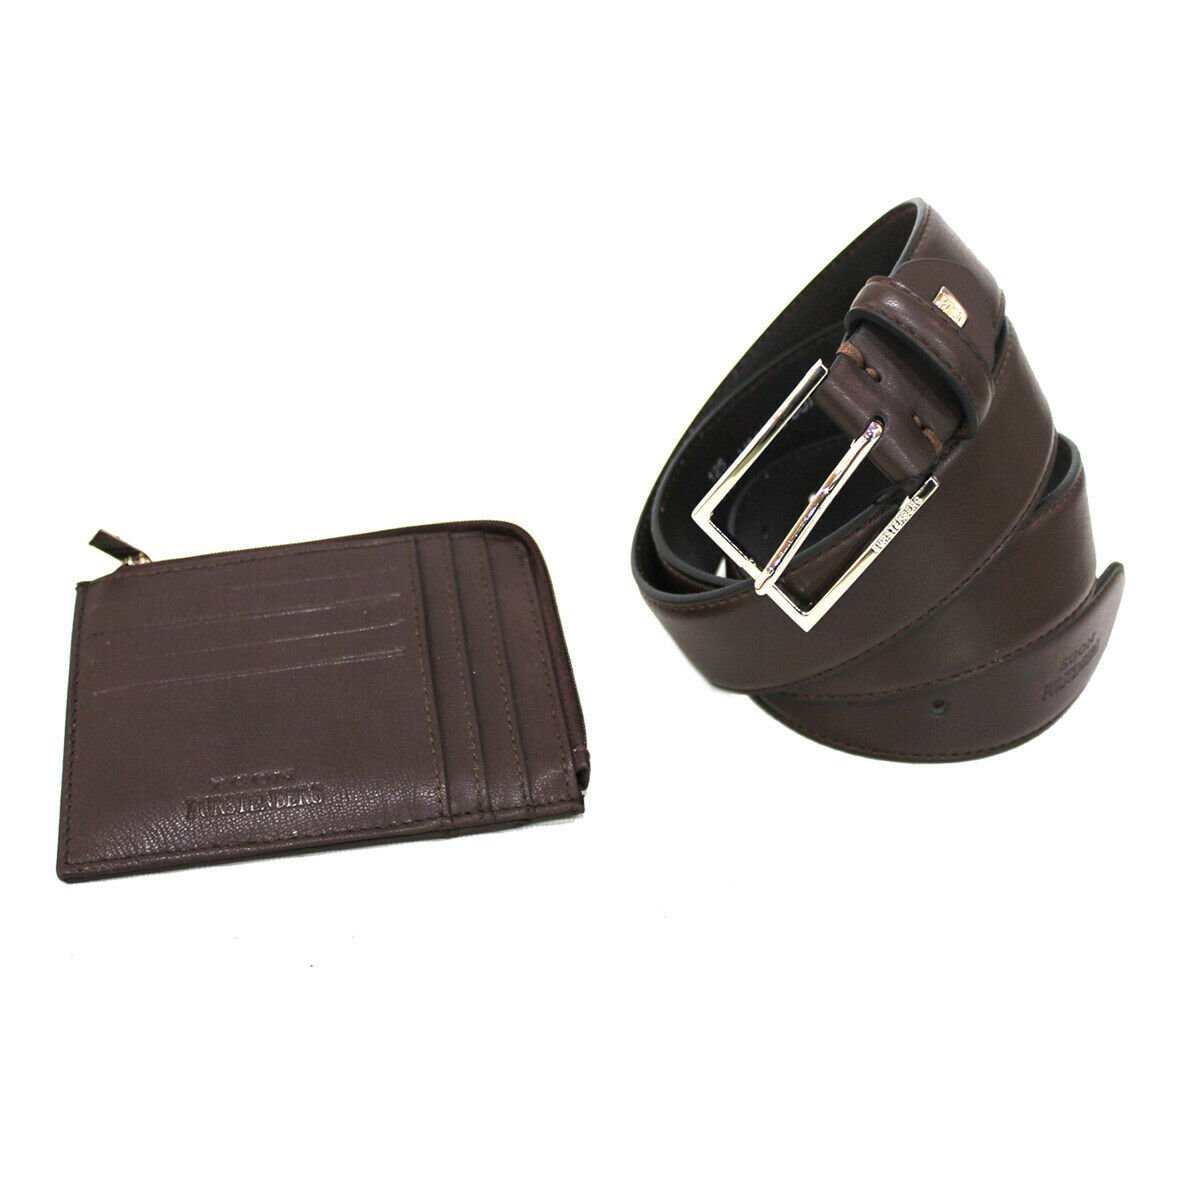 Men's set faux leather belt 35 mm high size 125 and leather keychain in box brwn